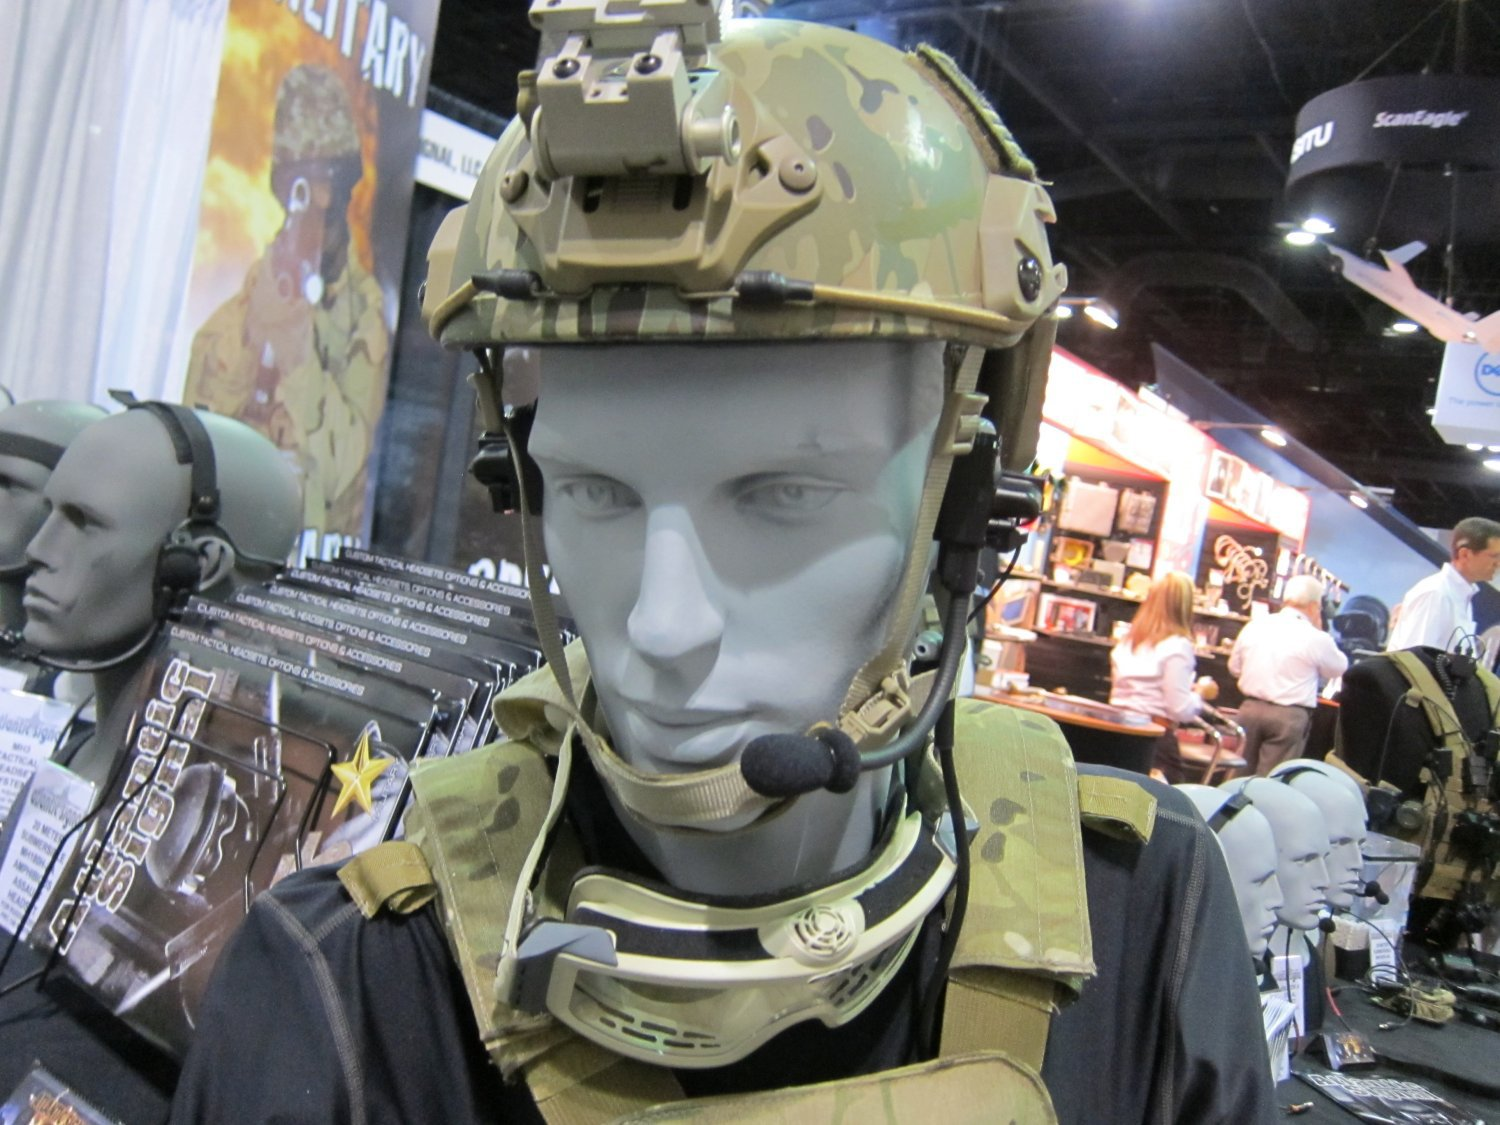 <!--:en-->Ops-Core FAST Ballistic Helmet (Crye MultiCam Camo Pattern?) Military Combat Helmet with FAST-ARC Accessory Rail Connectors and Head-Loc Chinstrap Retention System Going Operational in Afghanistan with U.S. Army Special Forces: FAST Helmet Demo Video, and Contour HD Tactical Helmet Cam (Camera) Photos! <!--:-->